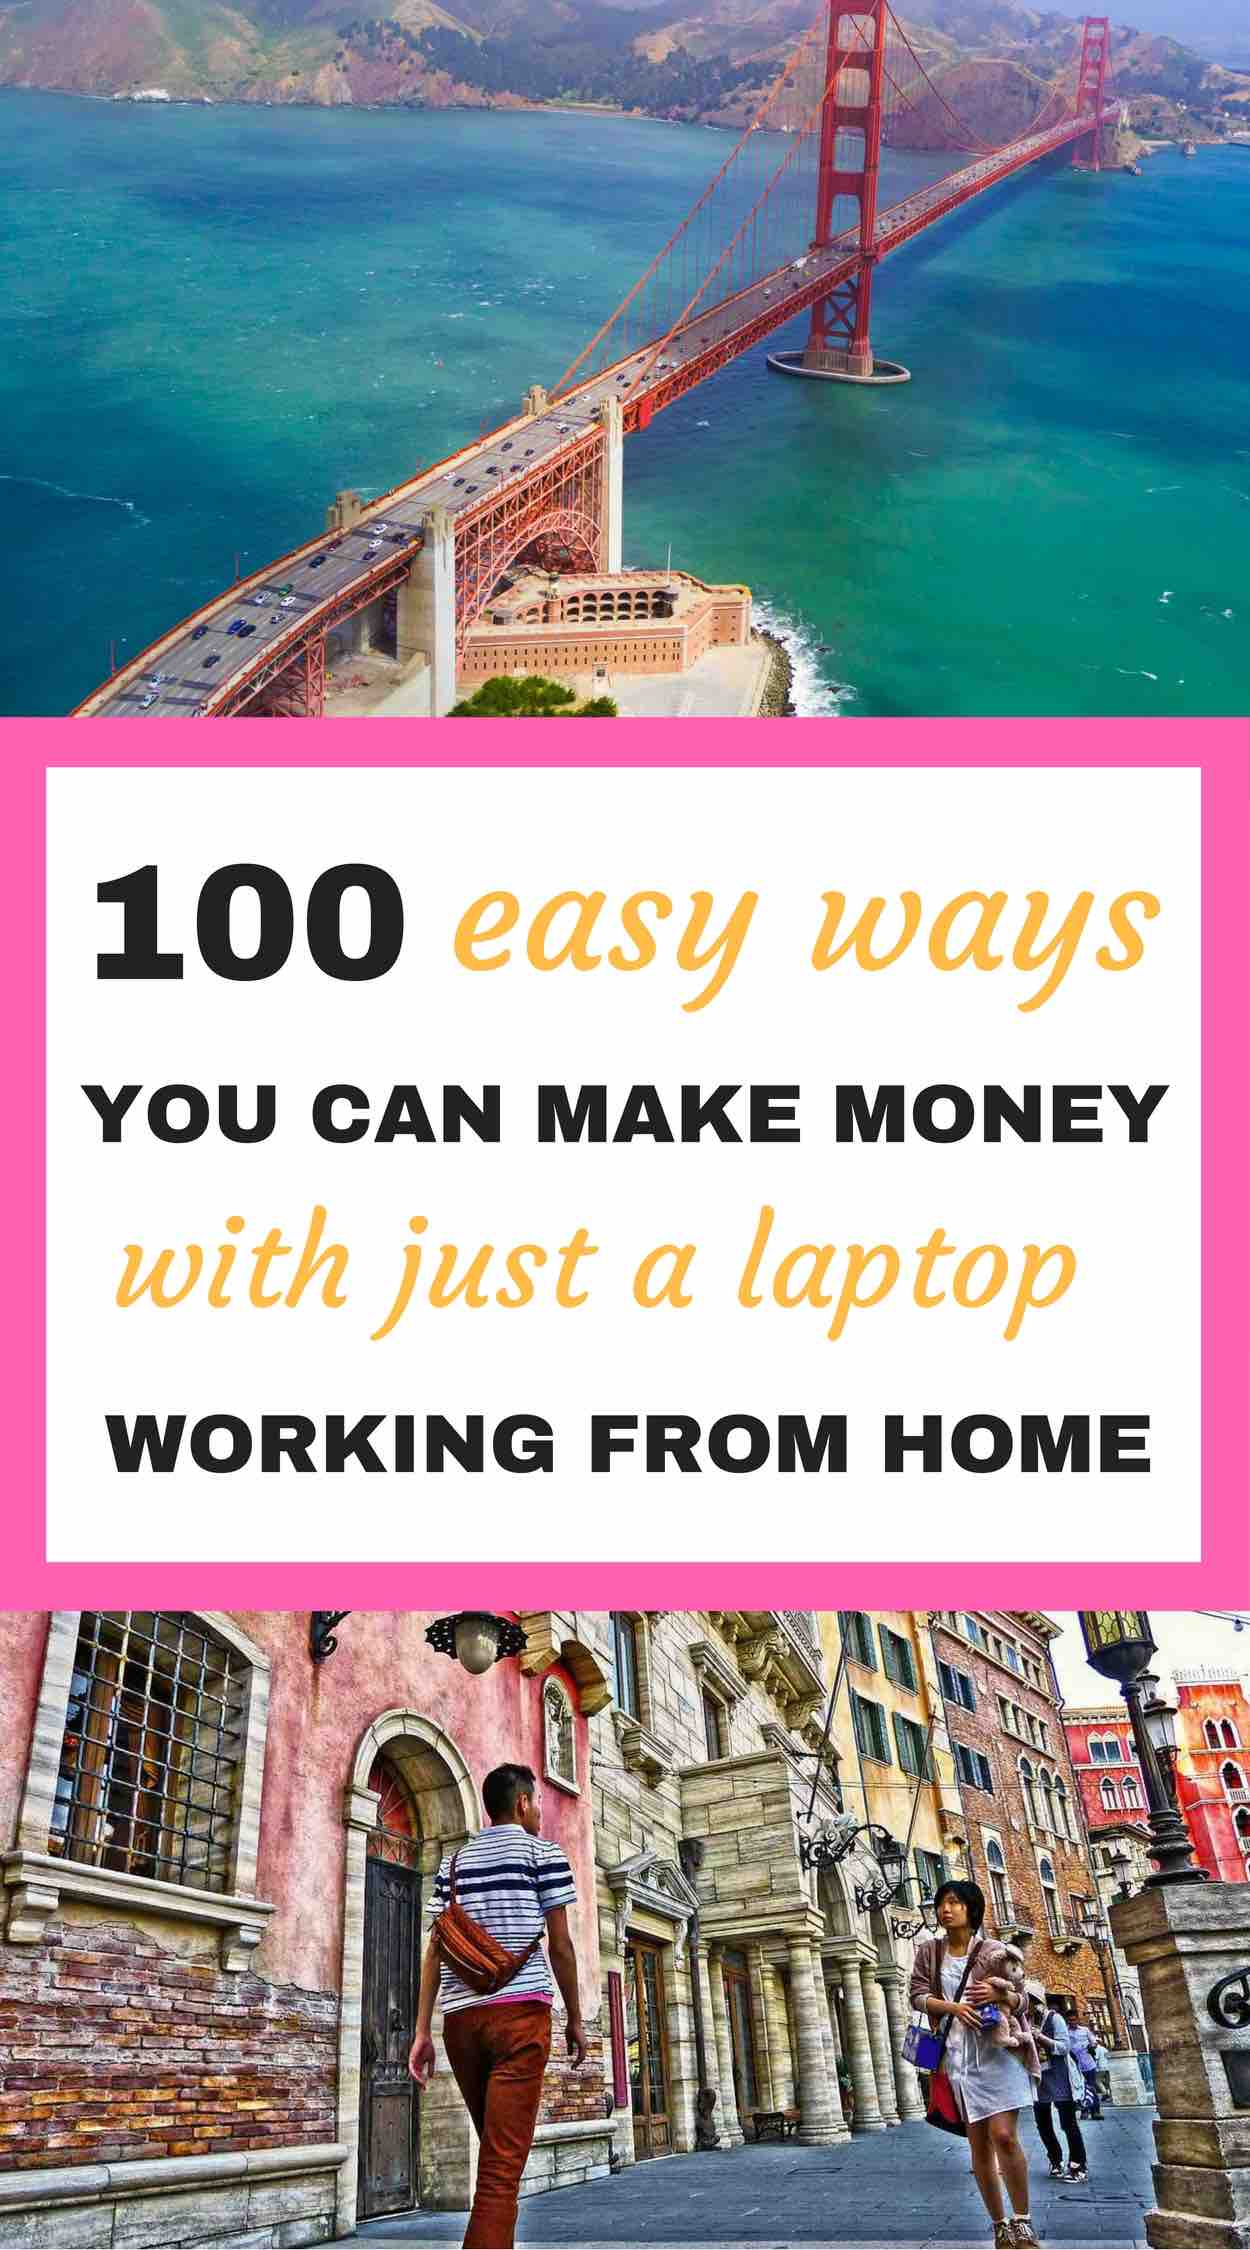 YES! I've been wanting to work from home and need a work from home job! so I can travel full time!